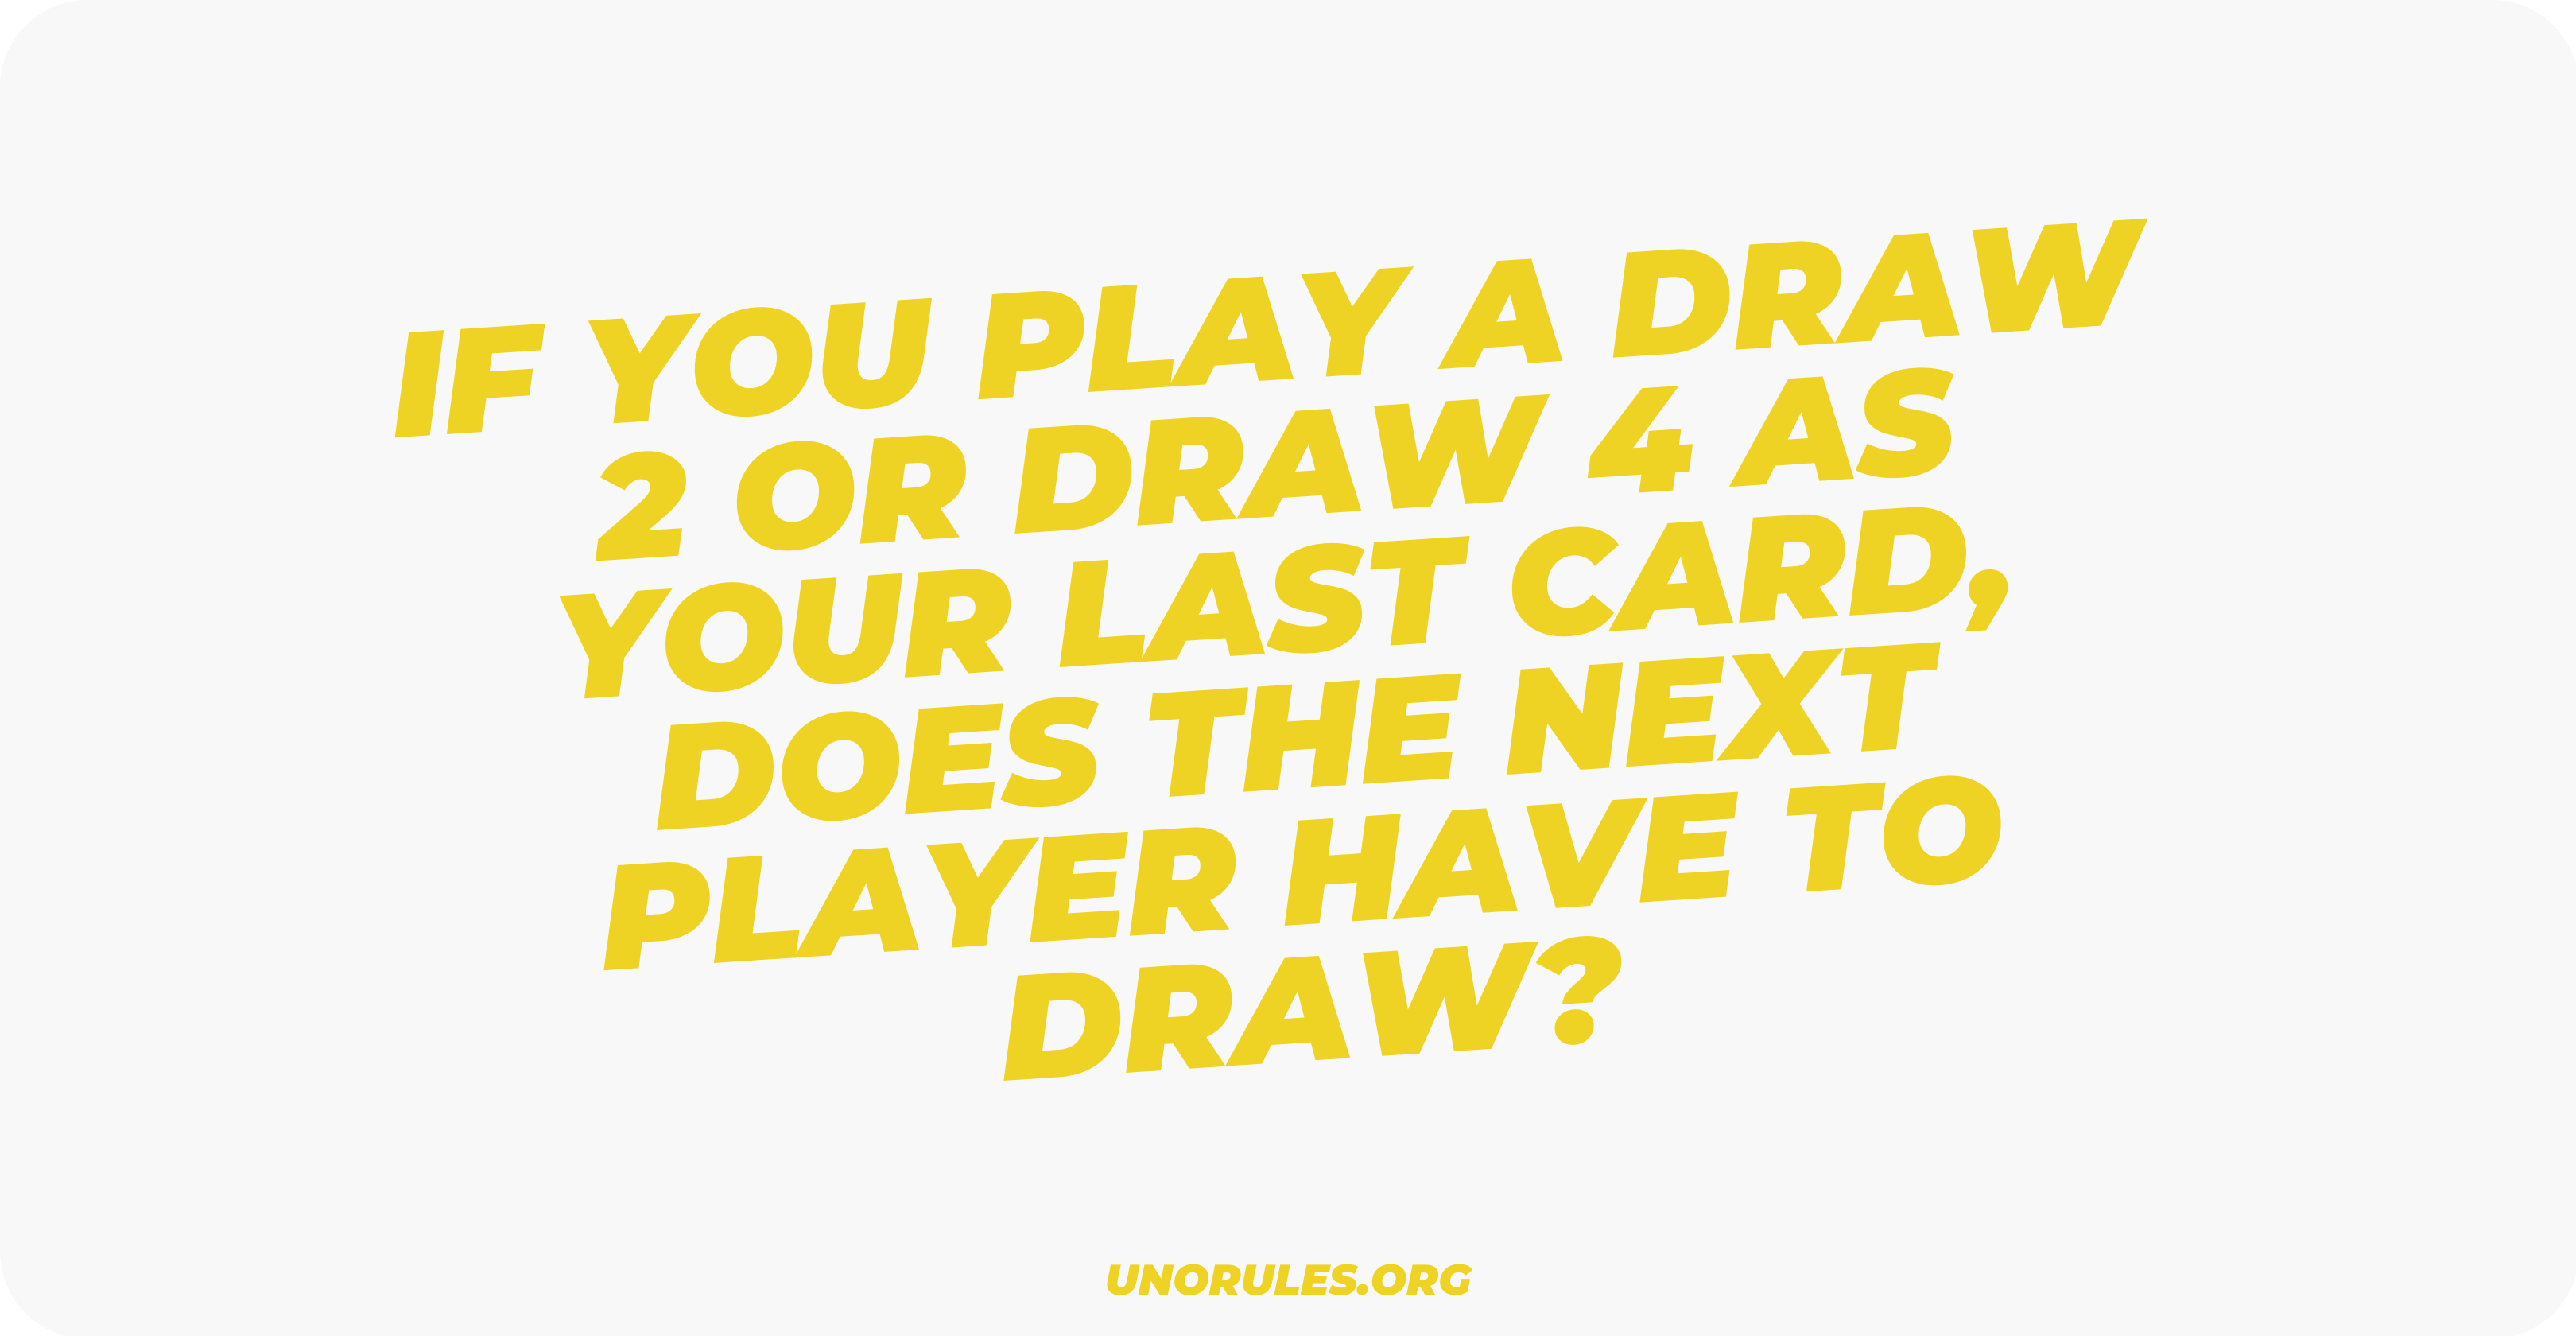 If you play a Draw 2 or Draw 4 as your last card, does the next player have to draw